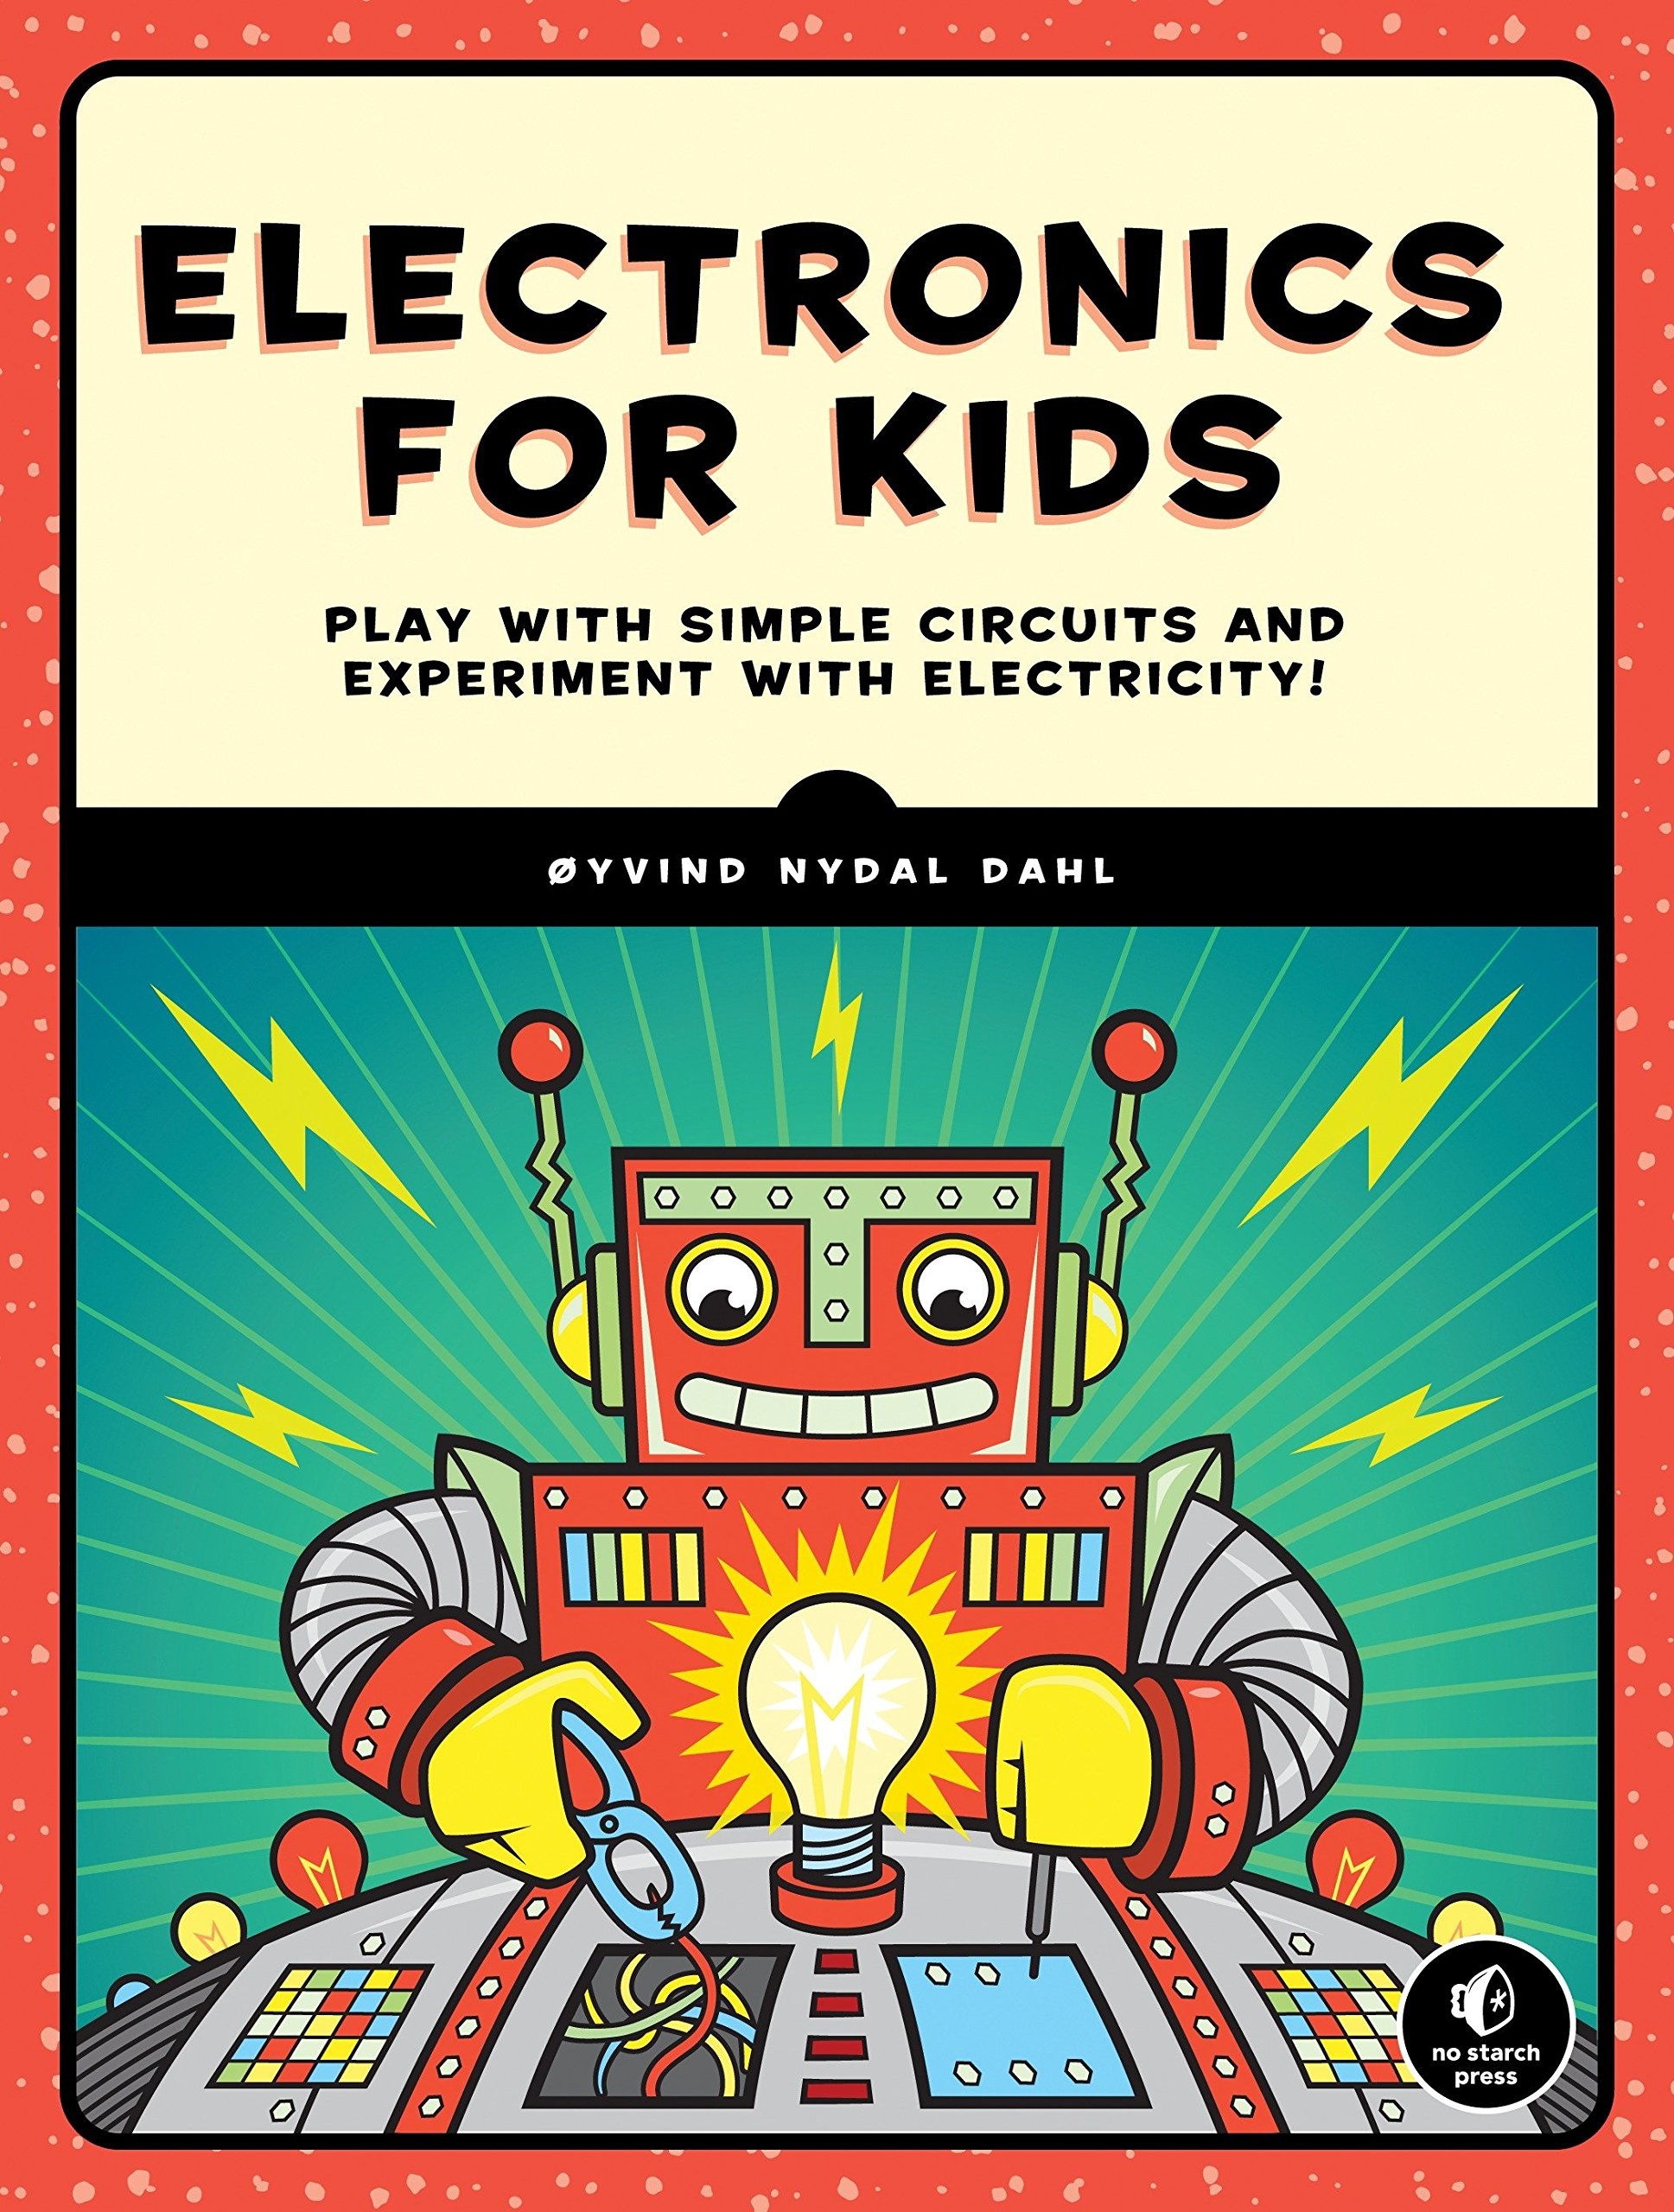 Electronics For Kids Play With Simple Circuits And Experiment Learning Circuit World Electricity Oyvind Nydal Dahl 9781593277253 Books